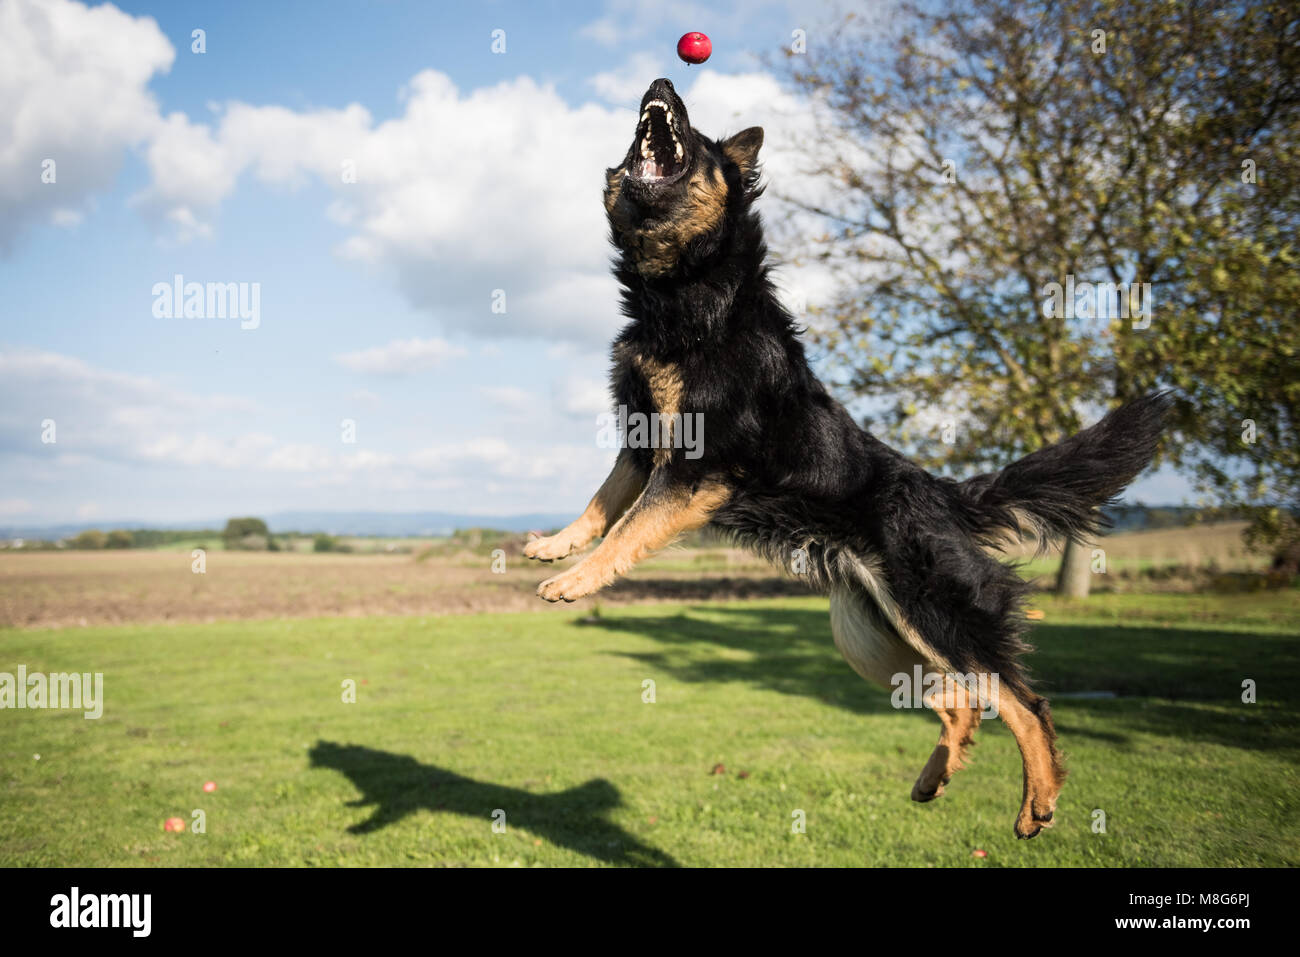 Young Bohemian Shepherd jumps and catches apples in a garden during a sunny day - Stock Image